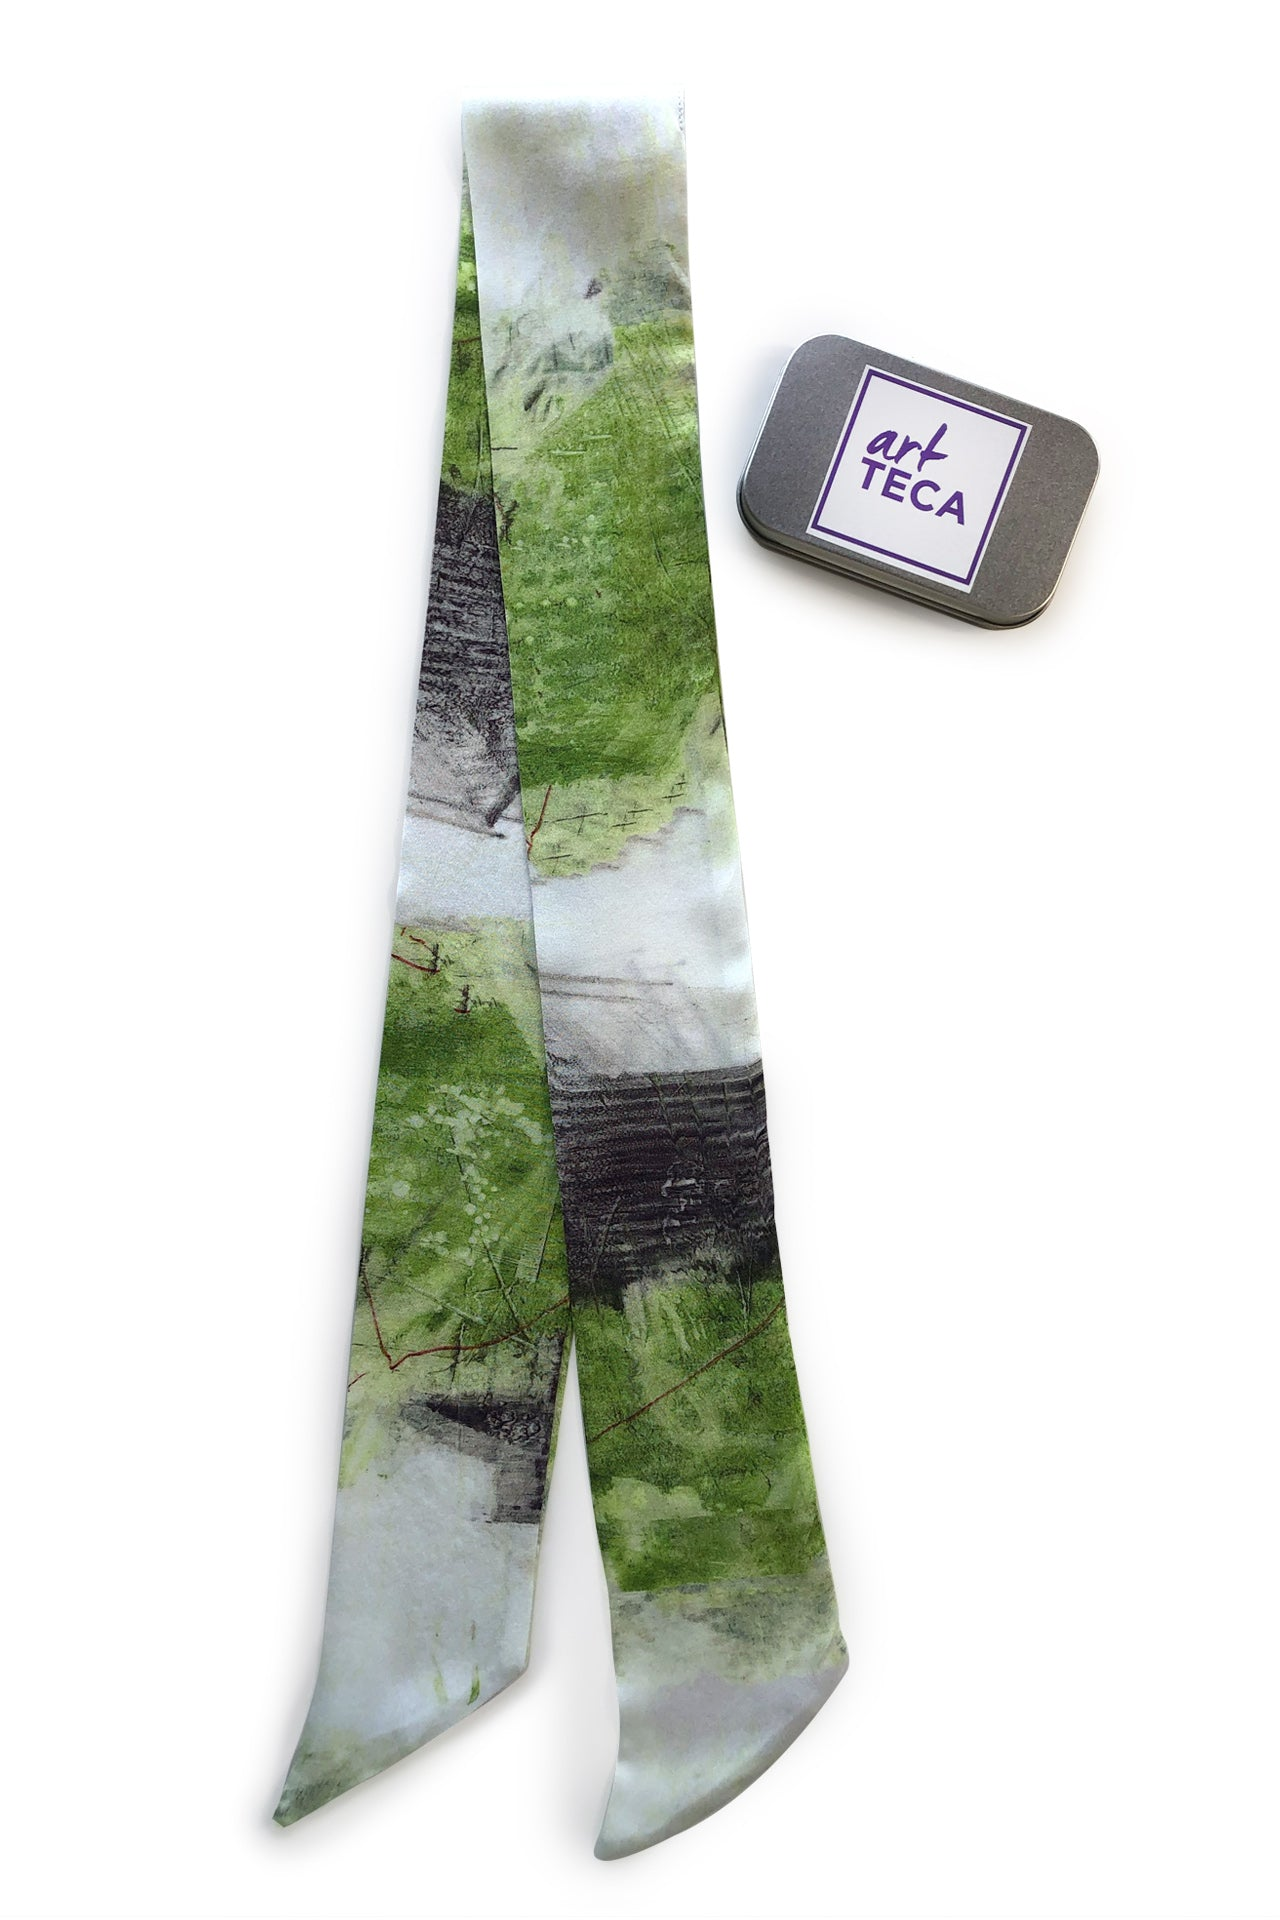 Bow Silk Scarf - Green Gray Cabin Print Bow Silks Scarves - artTECA